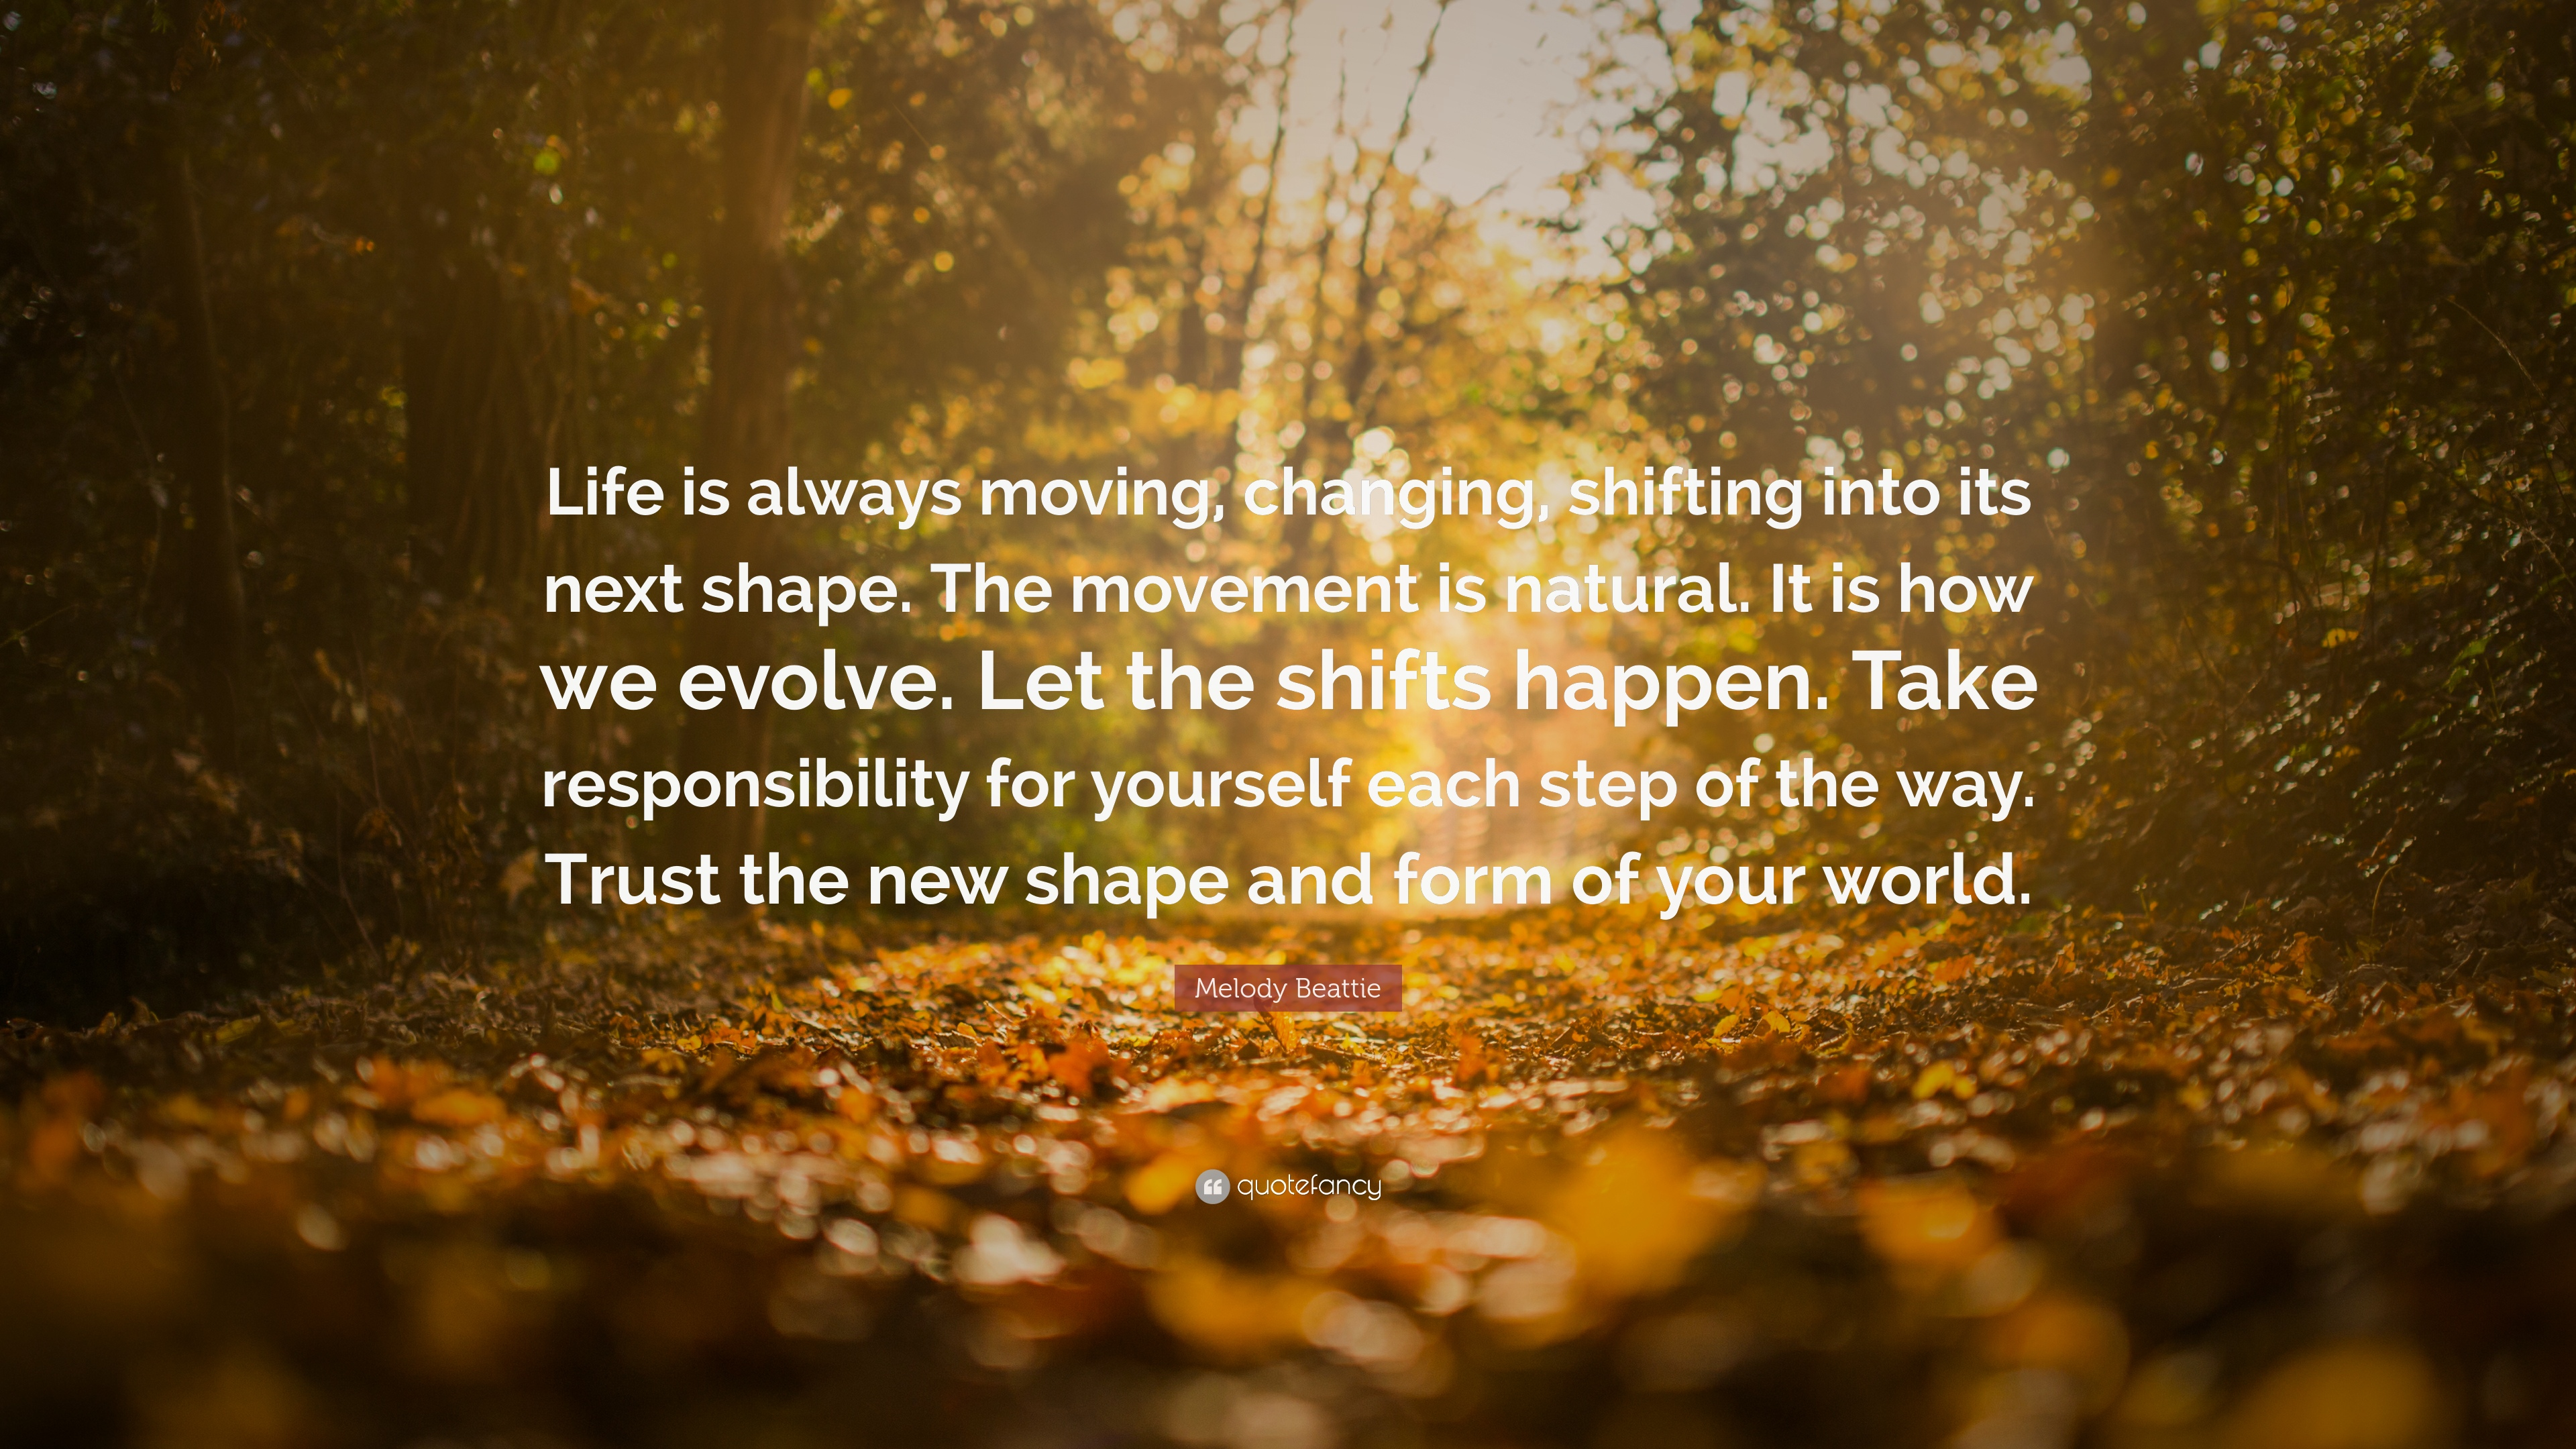 The 45 Most Inspiring Quotes on Change